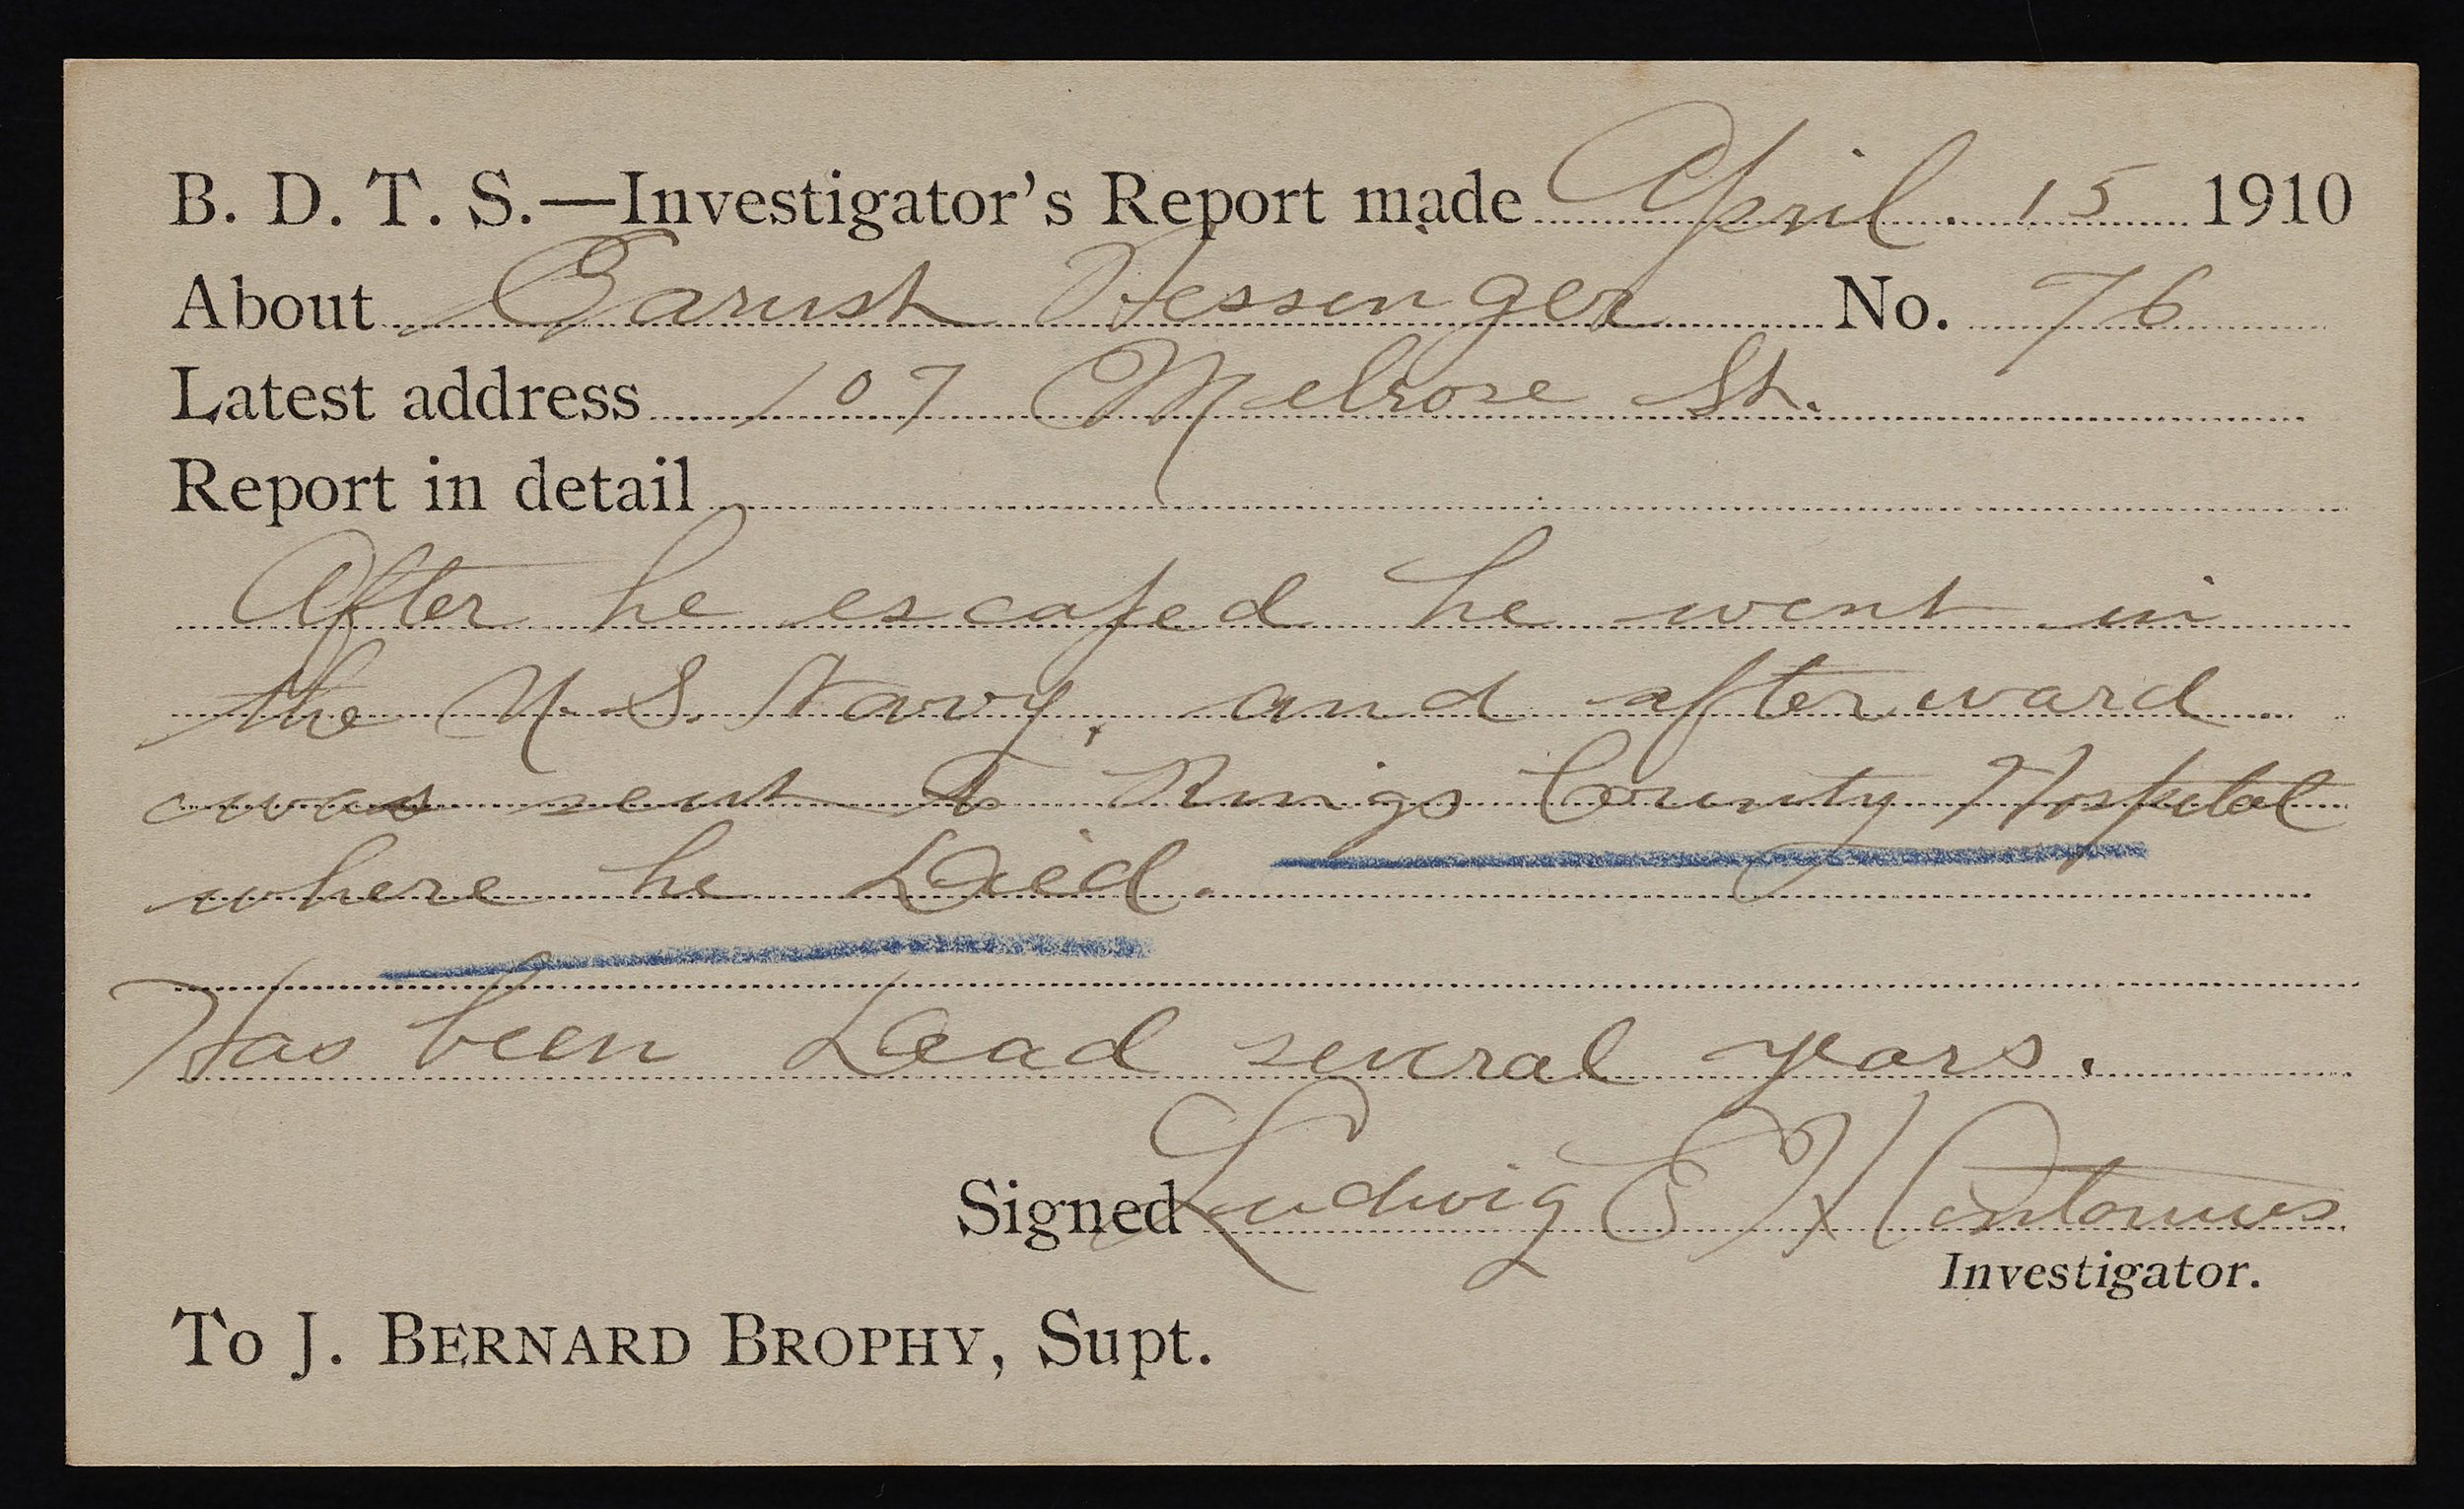 Investigator's Report, 1910. Records of the Brooklyn Disciplinary Training School for Boys, NYC Municipal Archives.